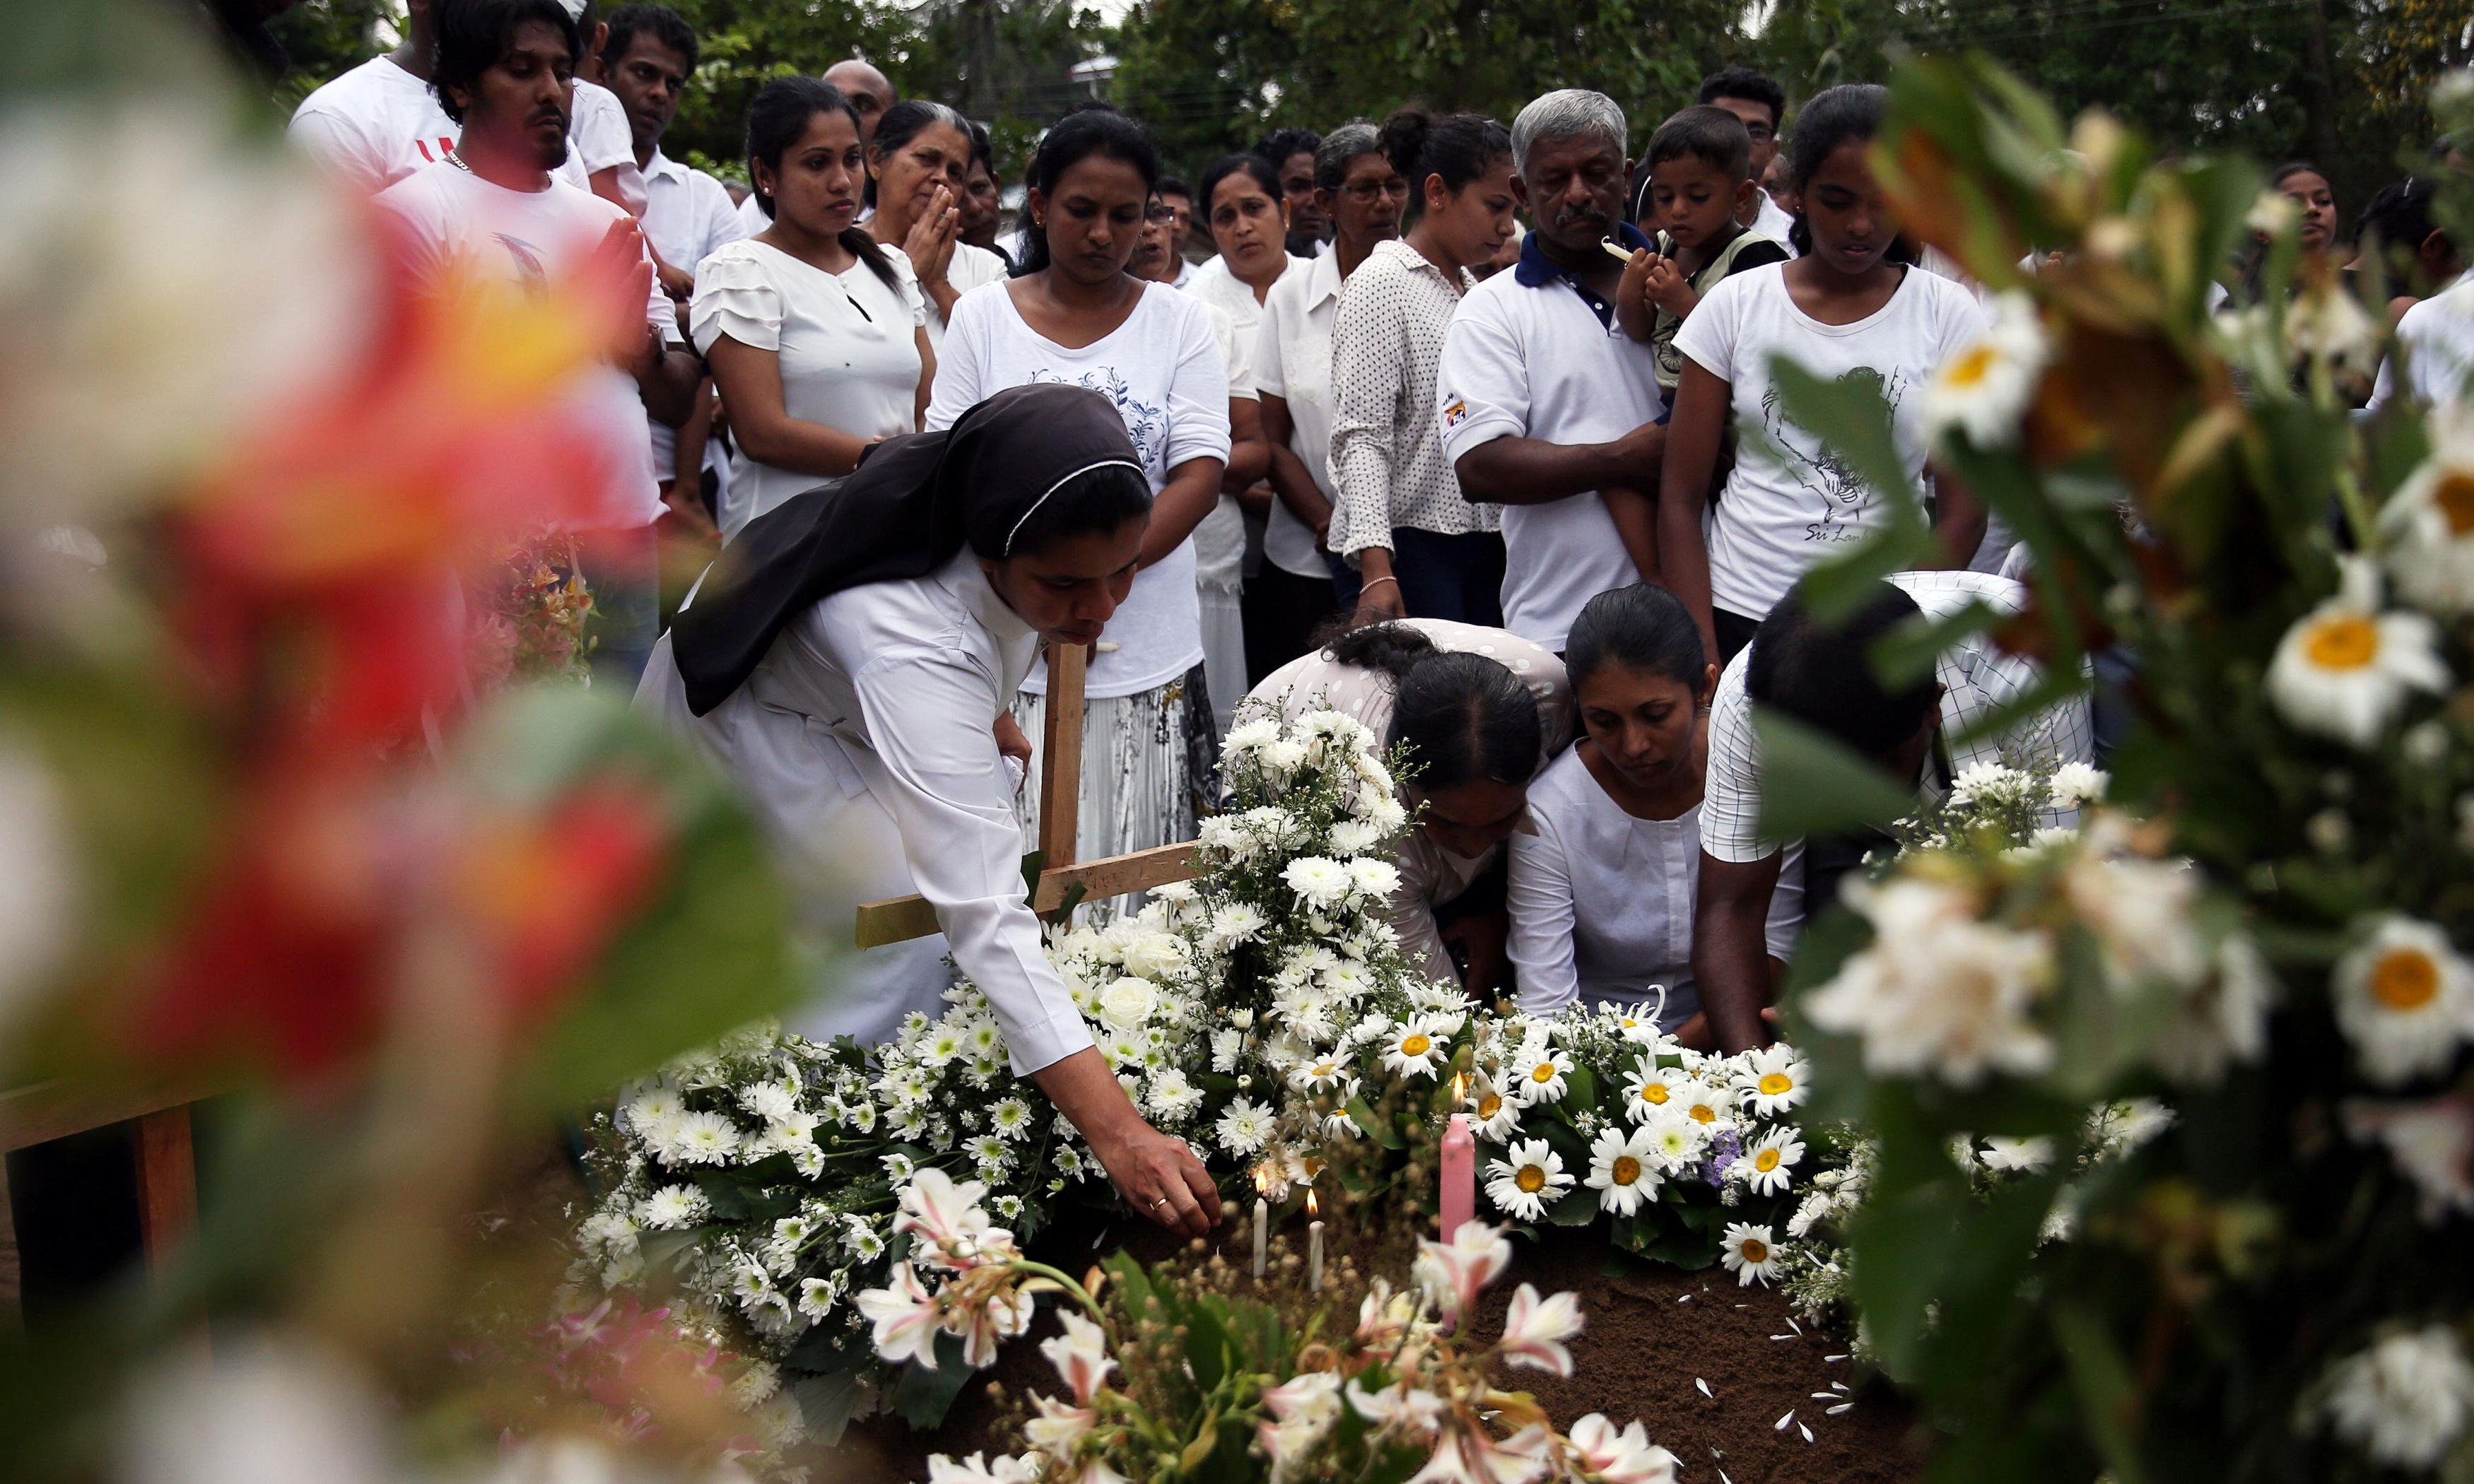 Death toll in Sri Lanka bombings revised down to 253